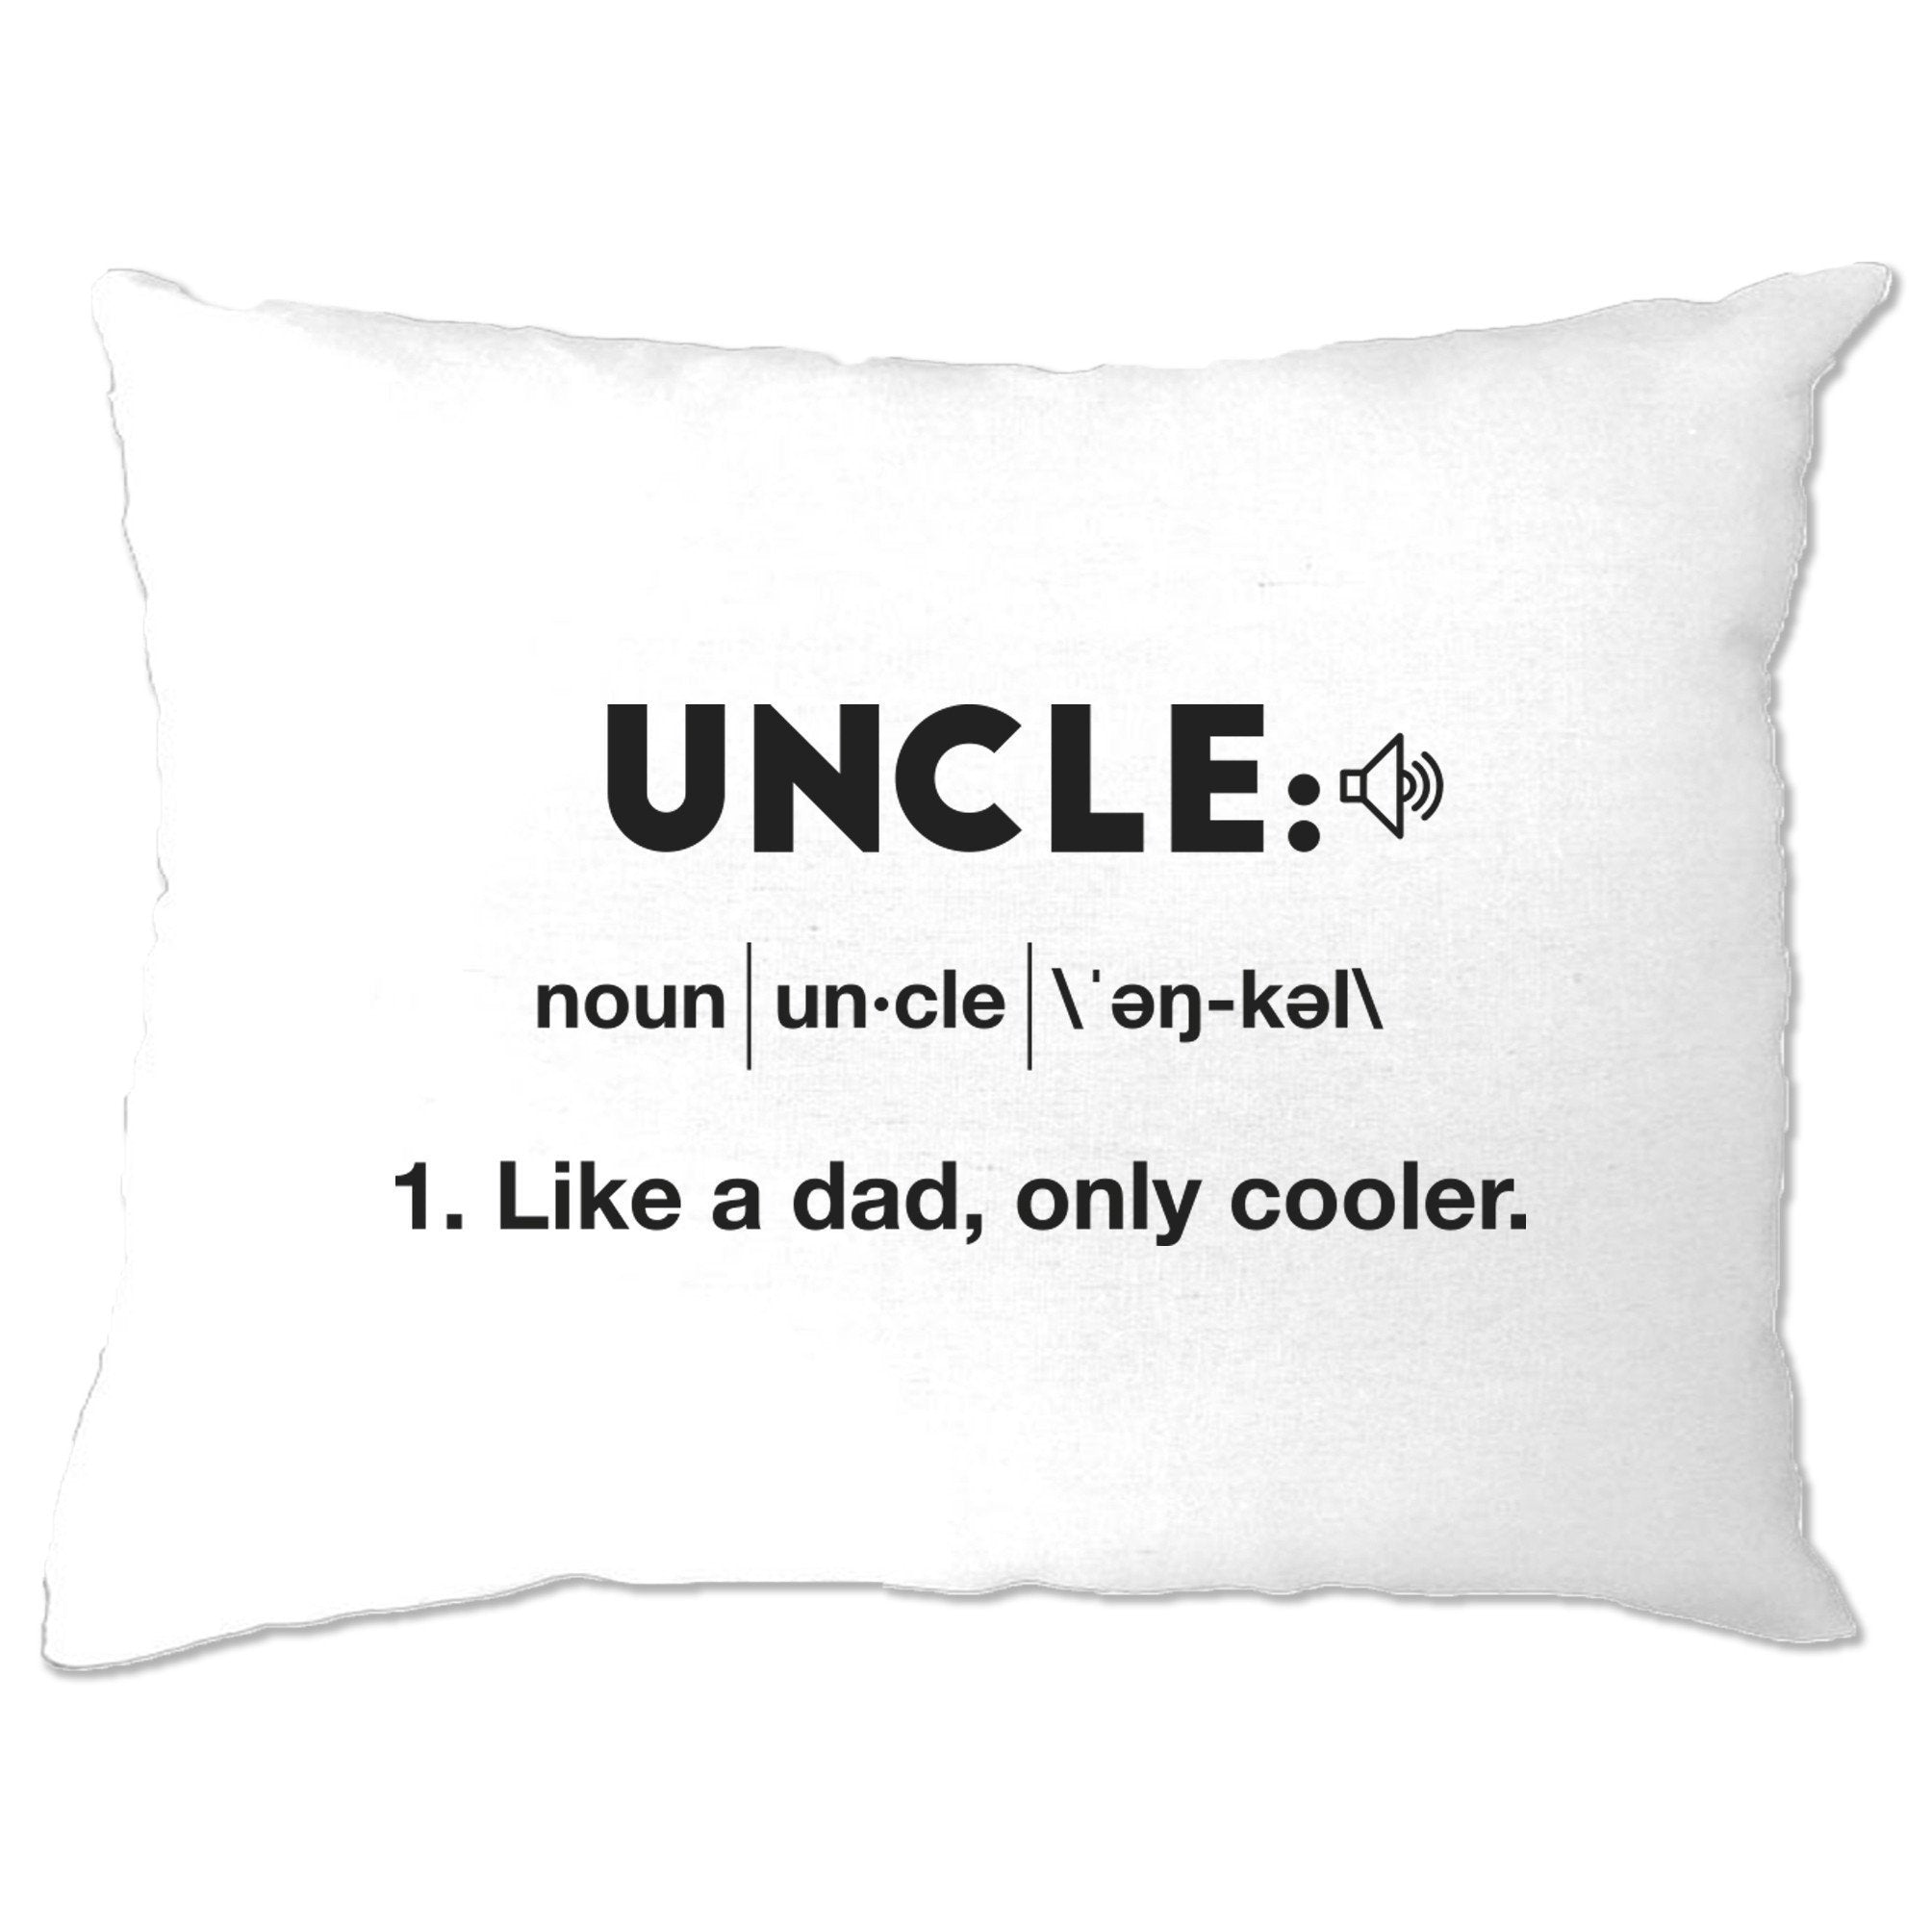 Novelty Pillow Case Uncle: Like A Dad, Only Cooler Joke